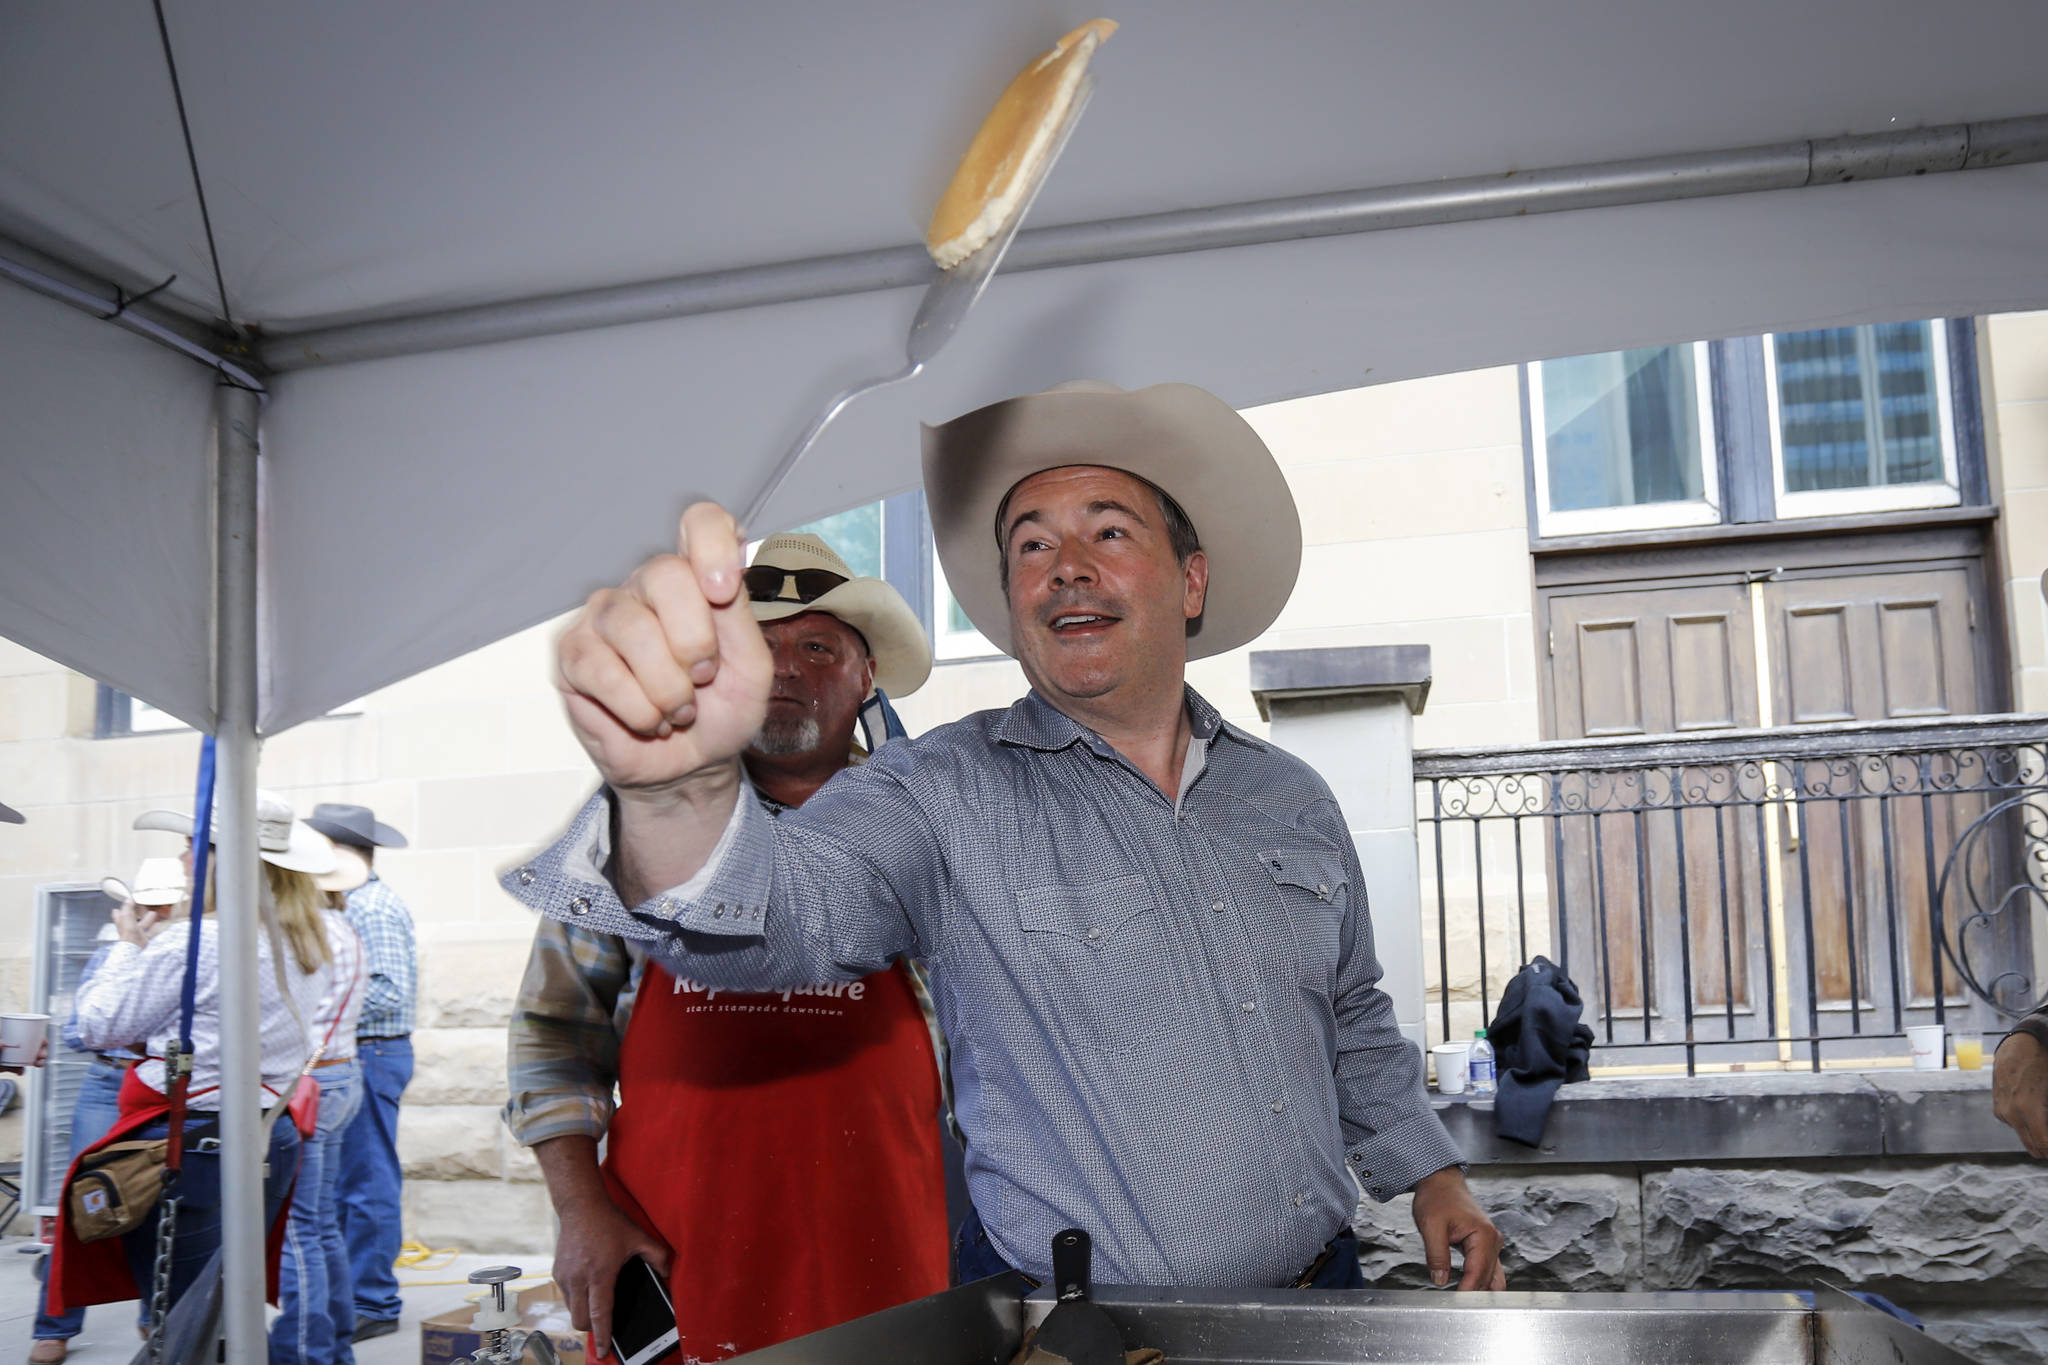 Alberta Premier Jason Kenney, right, cooks pancakes while hosting the Premier's annual Stampede breakfast in Calgary, Alta., Monday, July 12, 2021.THE CANADIAN PRESS/Jeff McIntosh